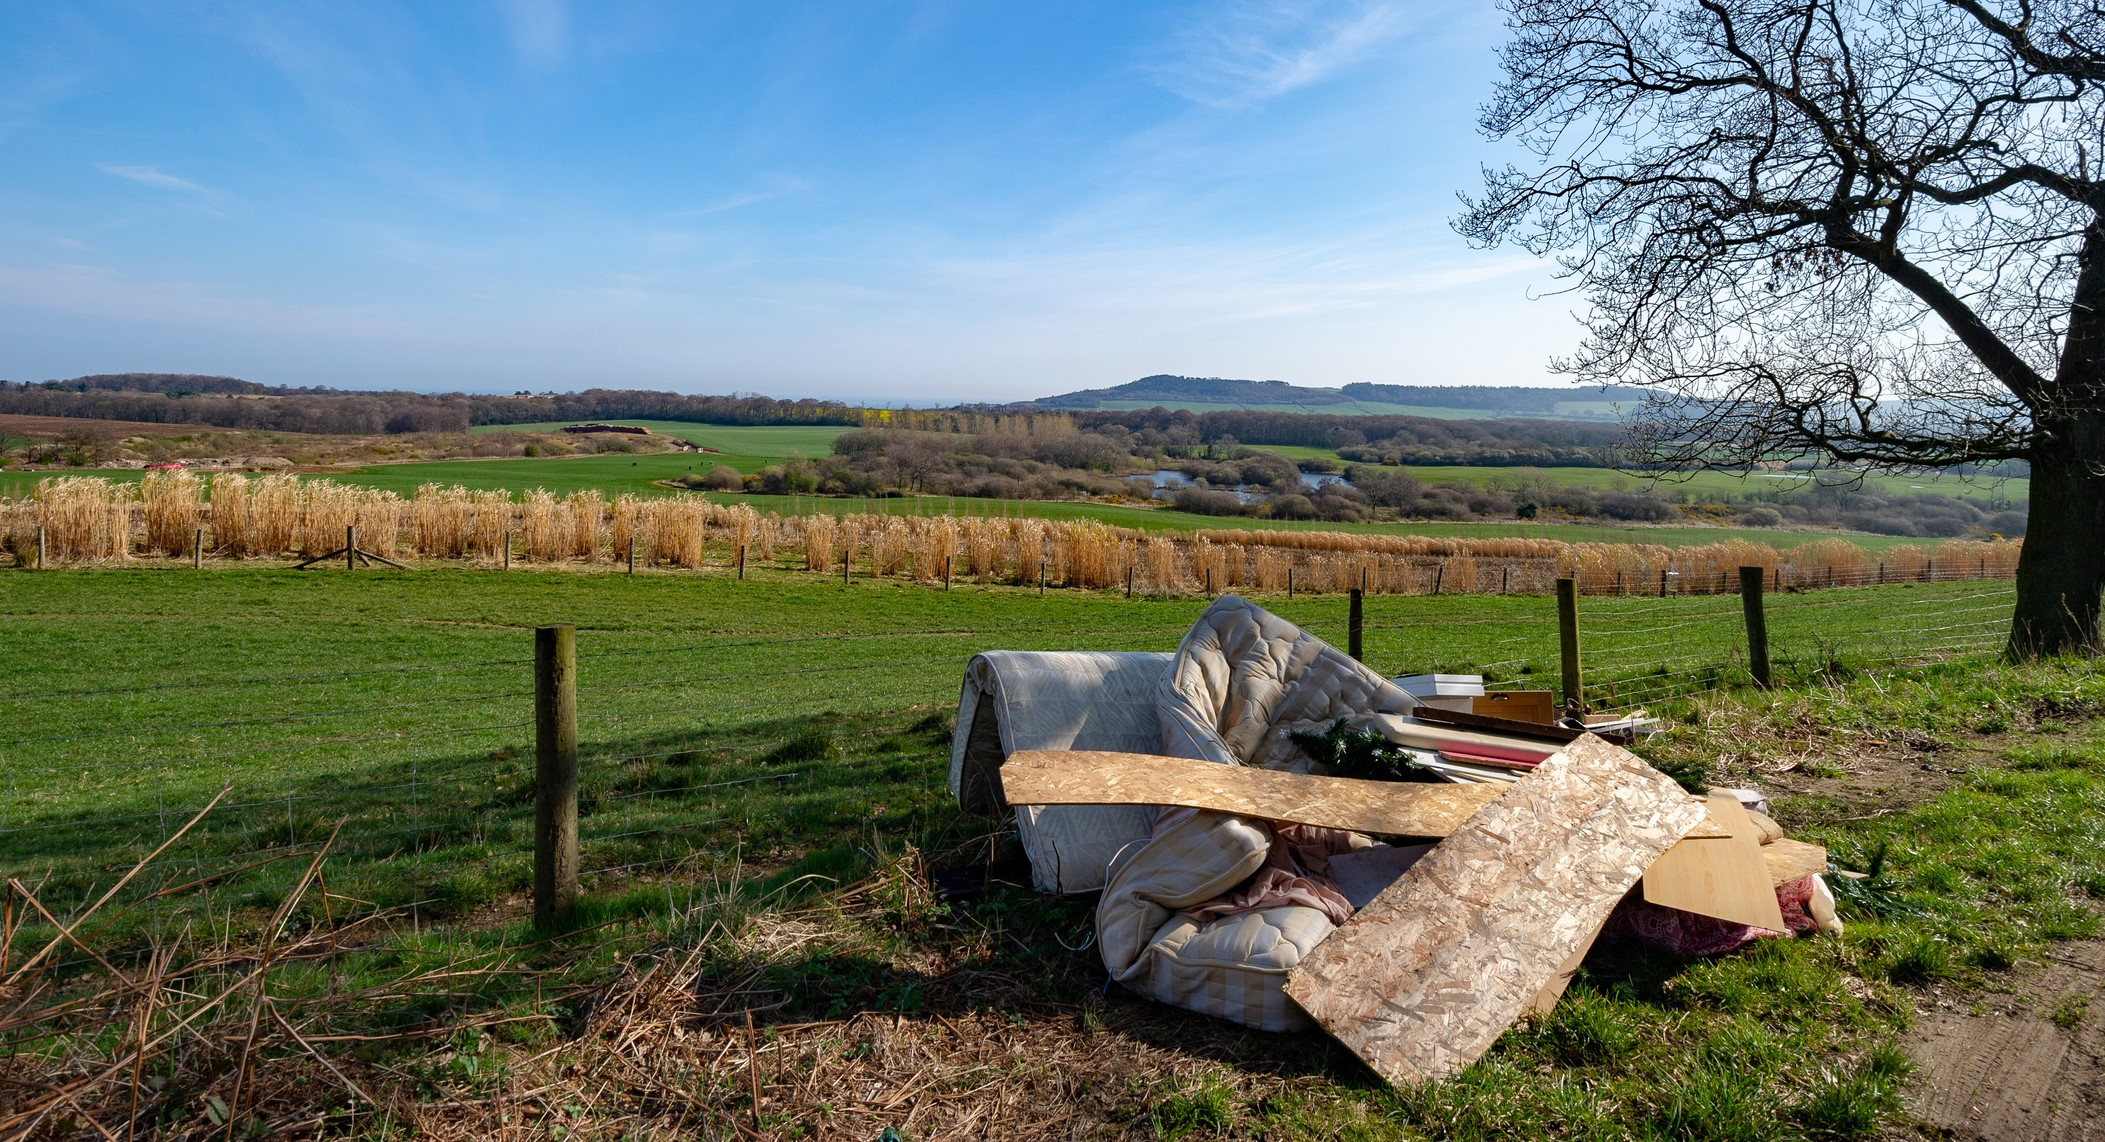 rubbish dumped in the countryside